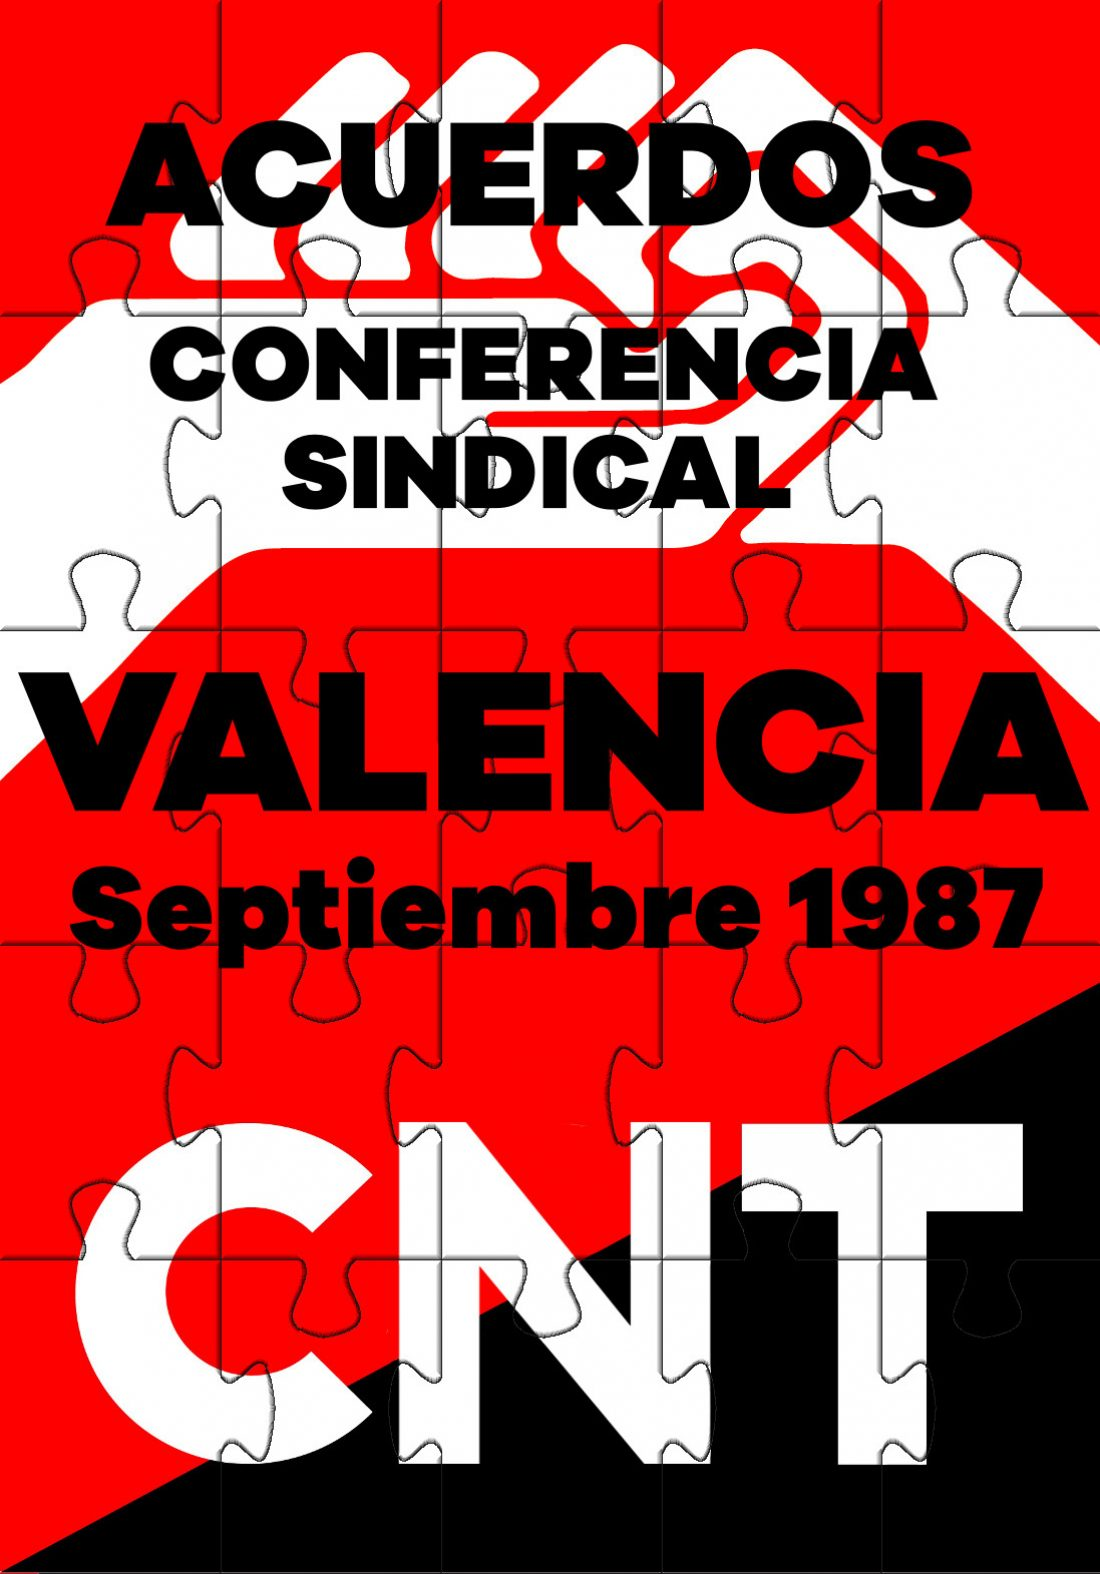 I Conferencia Sindical de la CGT. Madrid 1987